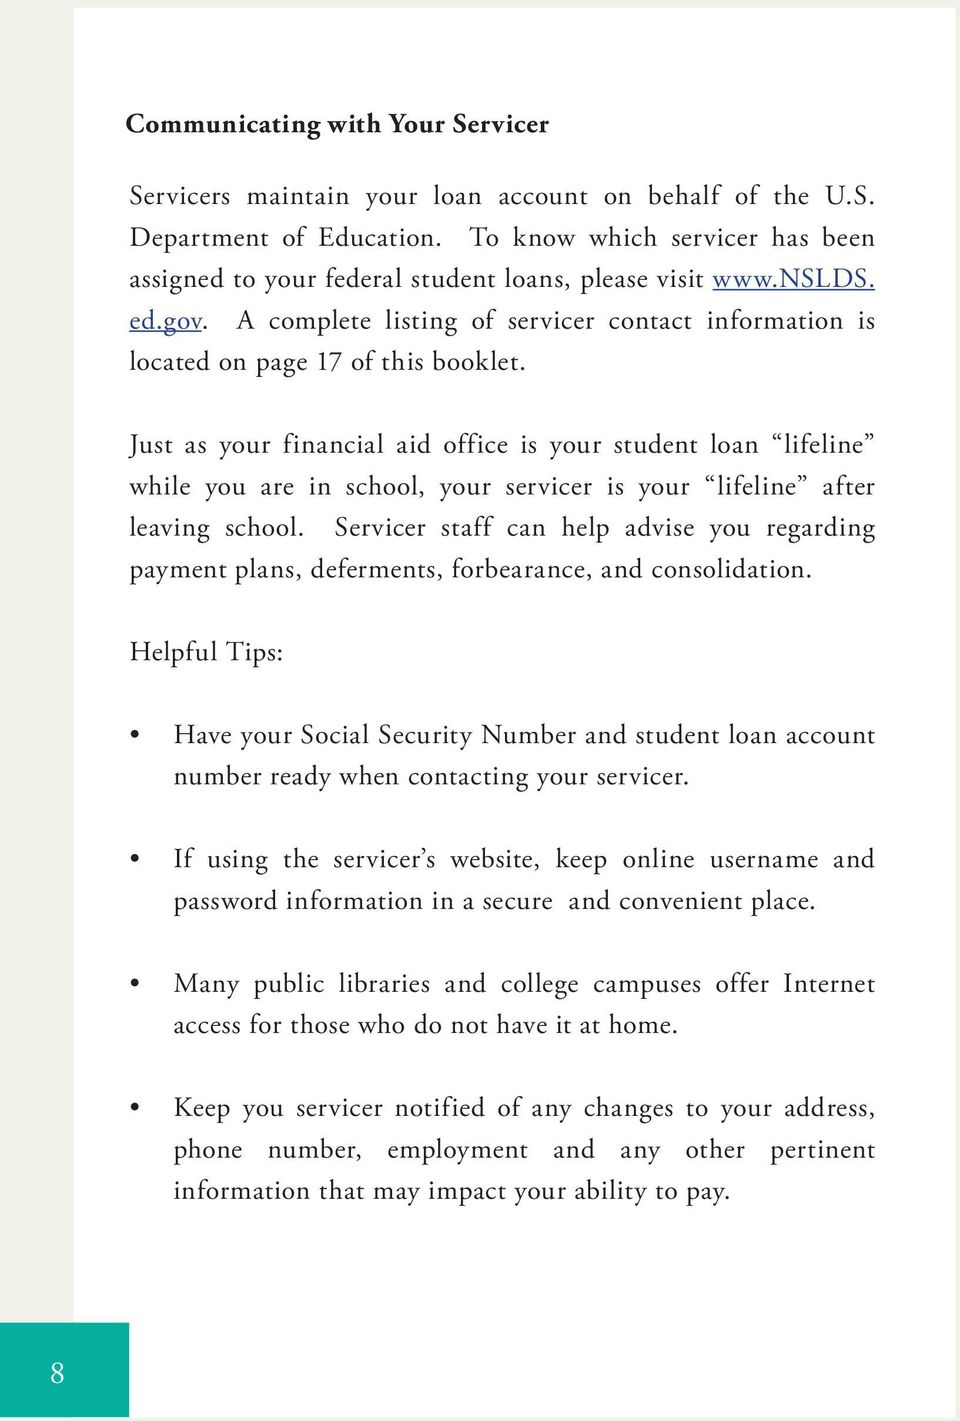 Just as your financial aid office is your student loan lifeline while you are in school, your servicer is your lifeline after leaving school.